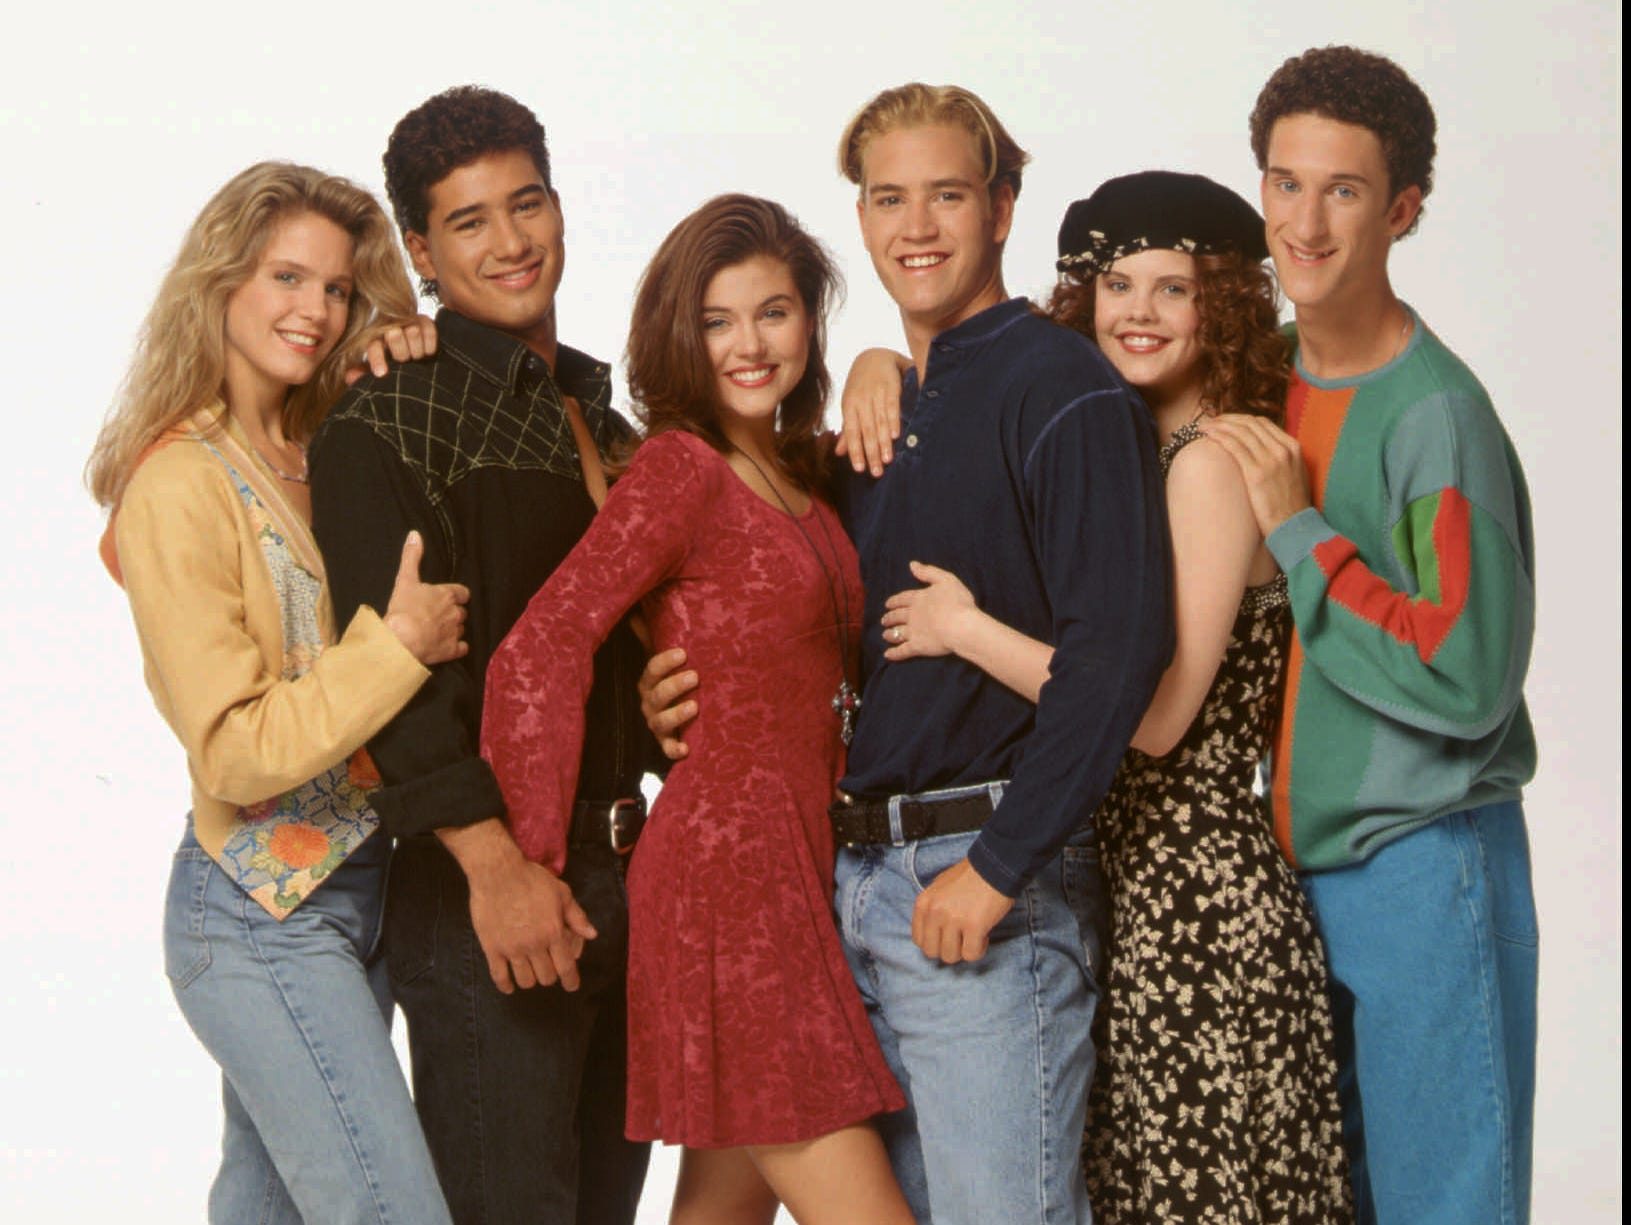 (NBC120 7/14/93) --- COLOR ART FROM NBC's JULY 1993 PRESS TOUR --- 'SAVED BY THE BELL: THE COLLEGE YEARS' --- Pictured: (L-R) ANNE TREMKO, MARIO LOPEZ, TIFFANI-AMBER THIESSEN, MARK-PAUL GOSSELAAR, KIERSTEN WARREN, DUSTIN DIAMOND --- NBC PHOTO BY CHRIS HASTON